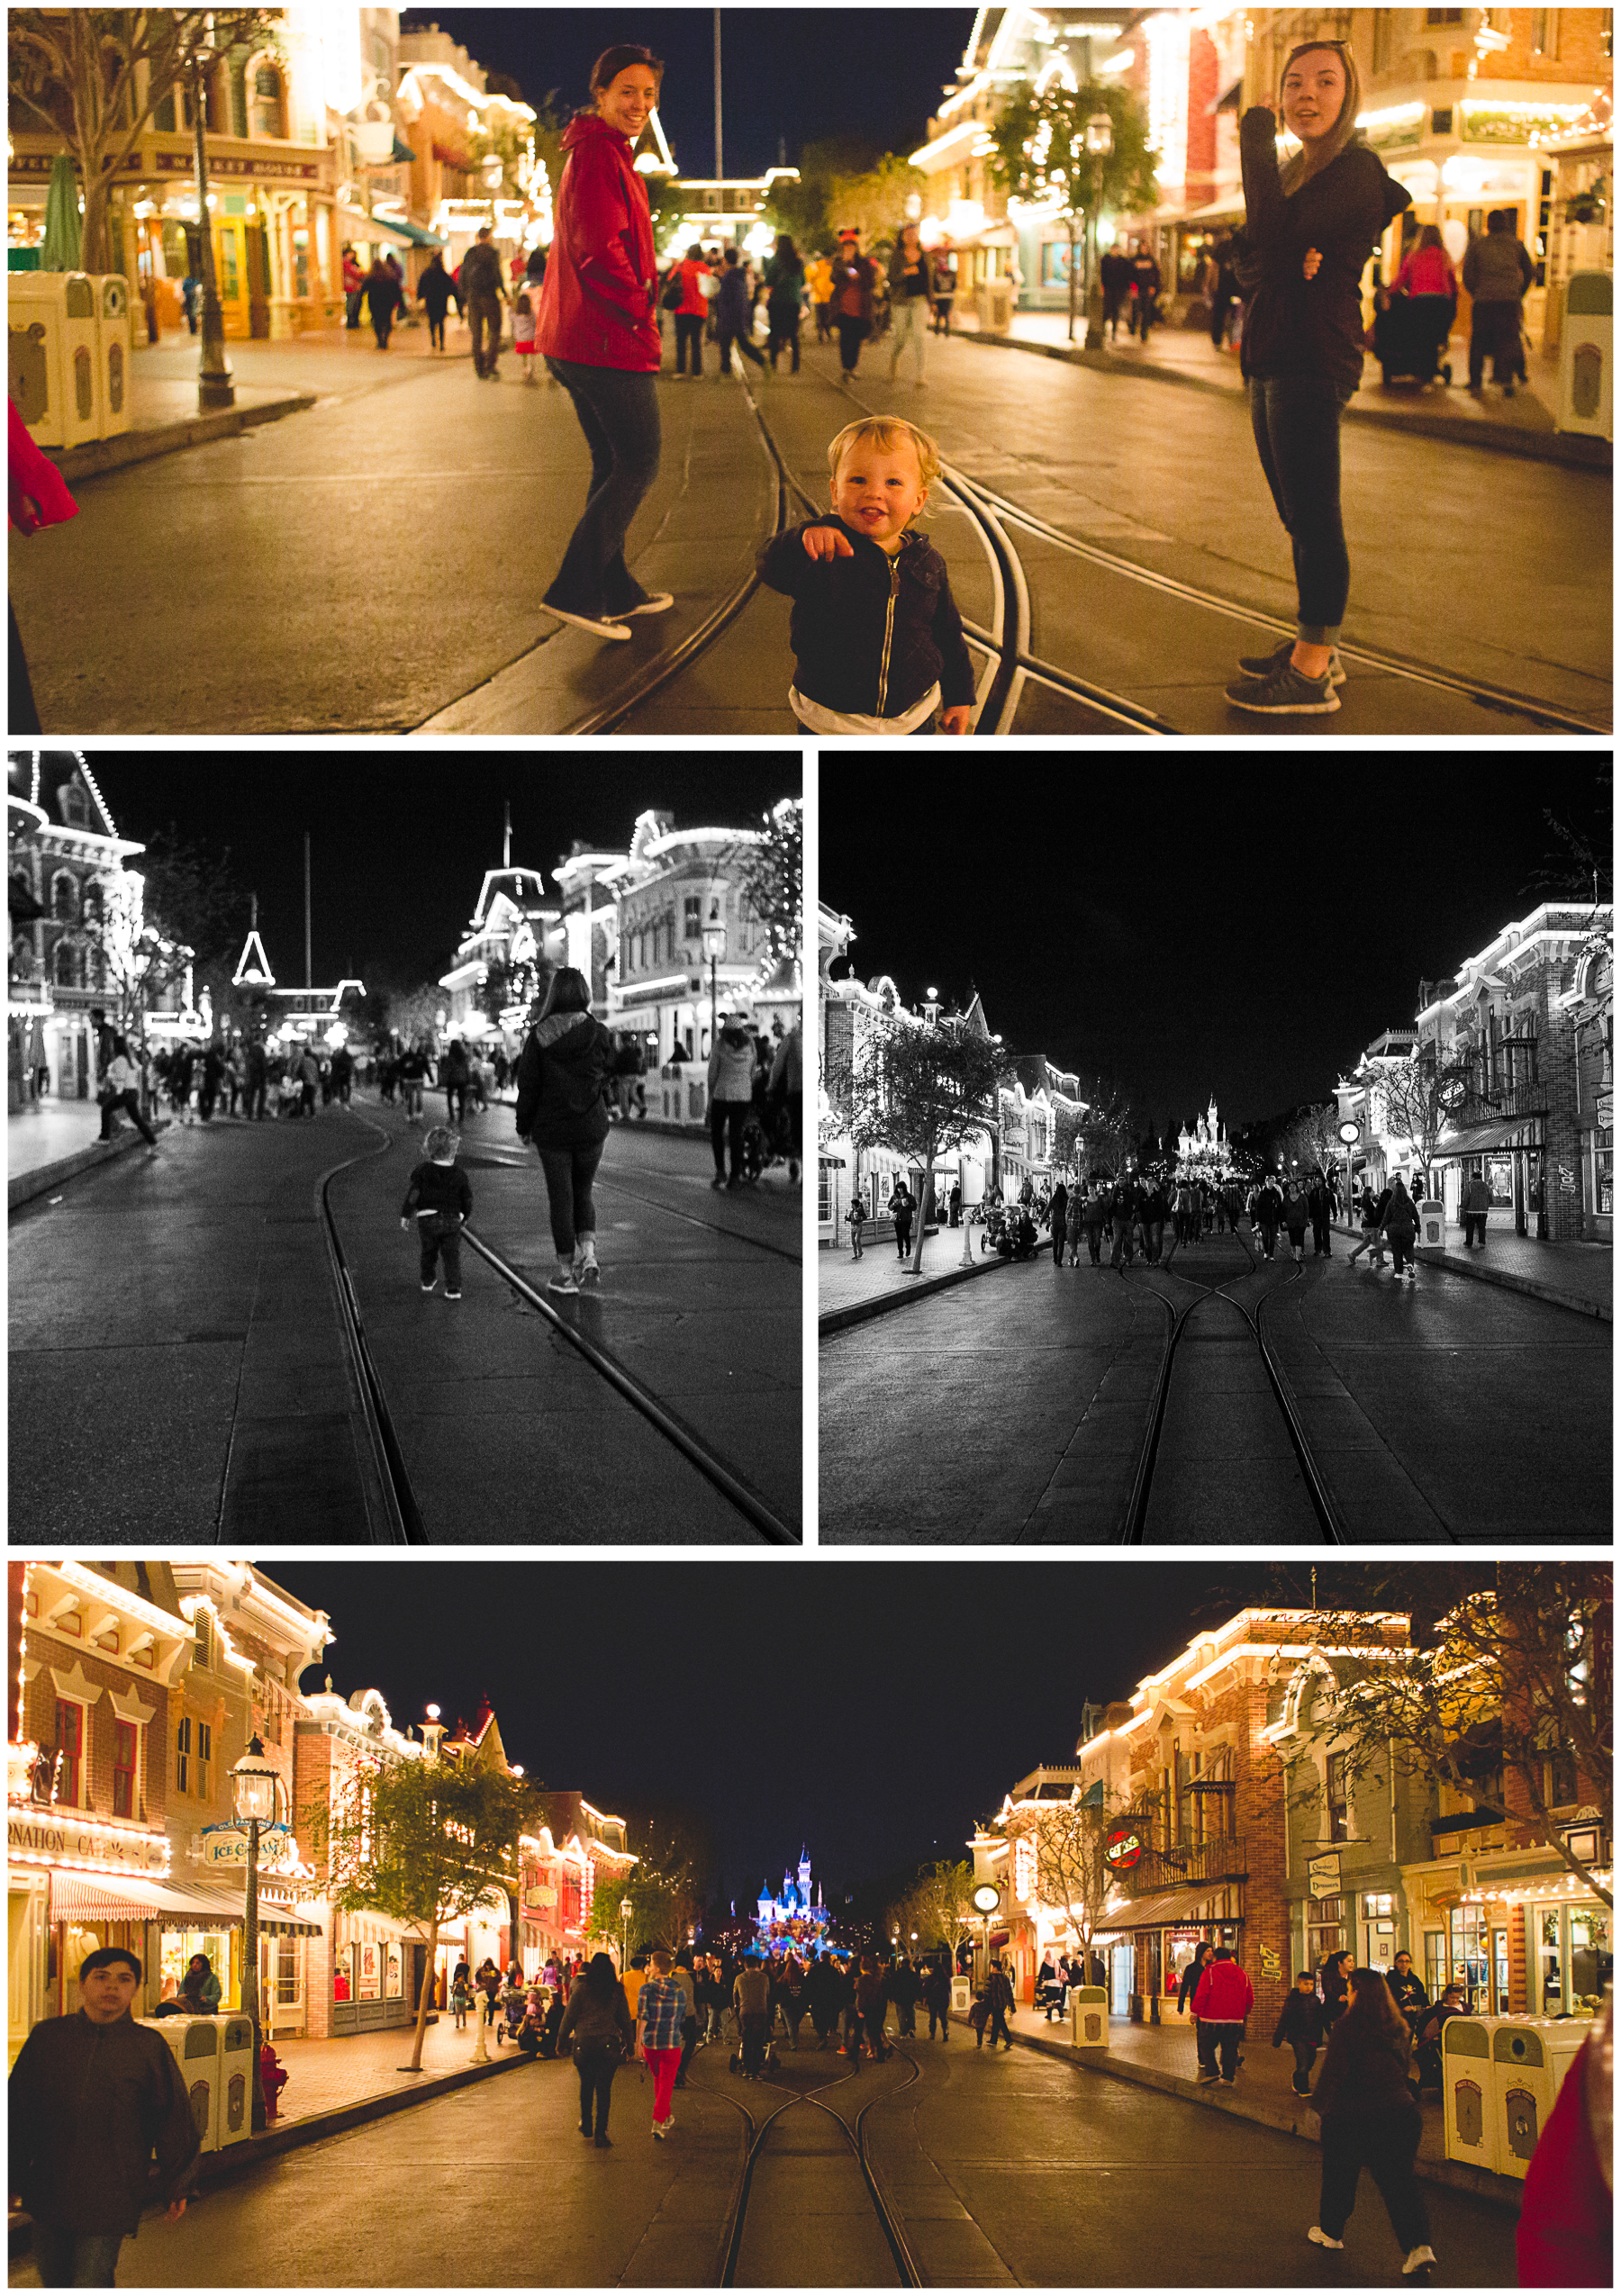 the happiest place on earth [cache #242] by andris pone – president, coin branding — disney's tagline, the happiest place on earth, is the world's biggest, boldest brand promise people come from all around the planet.